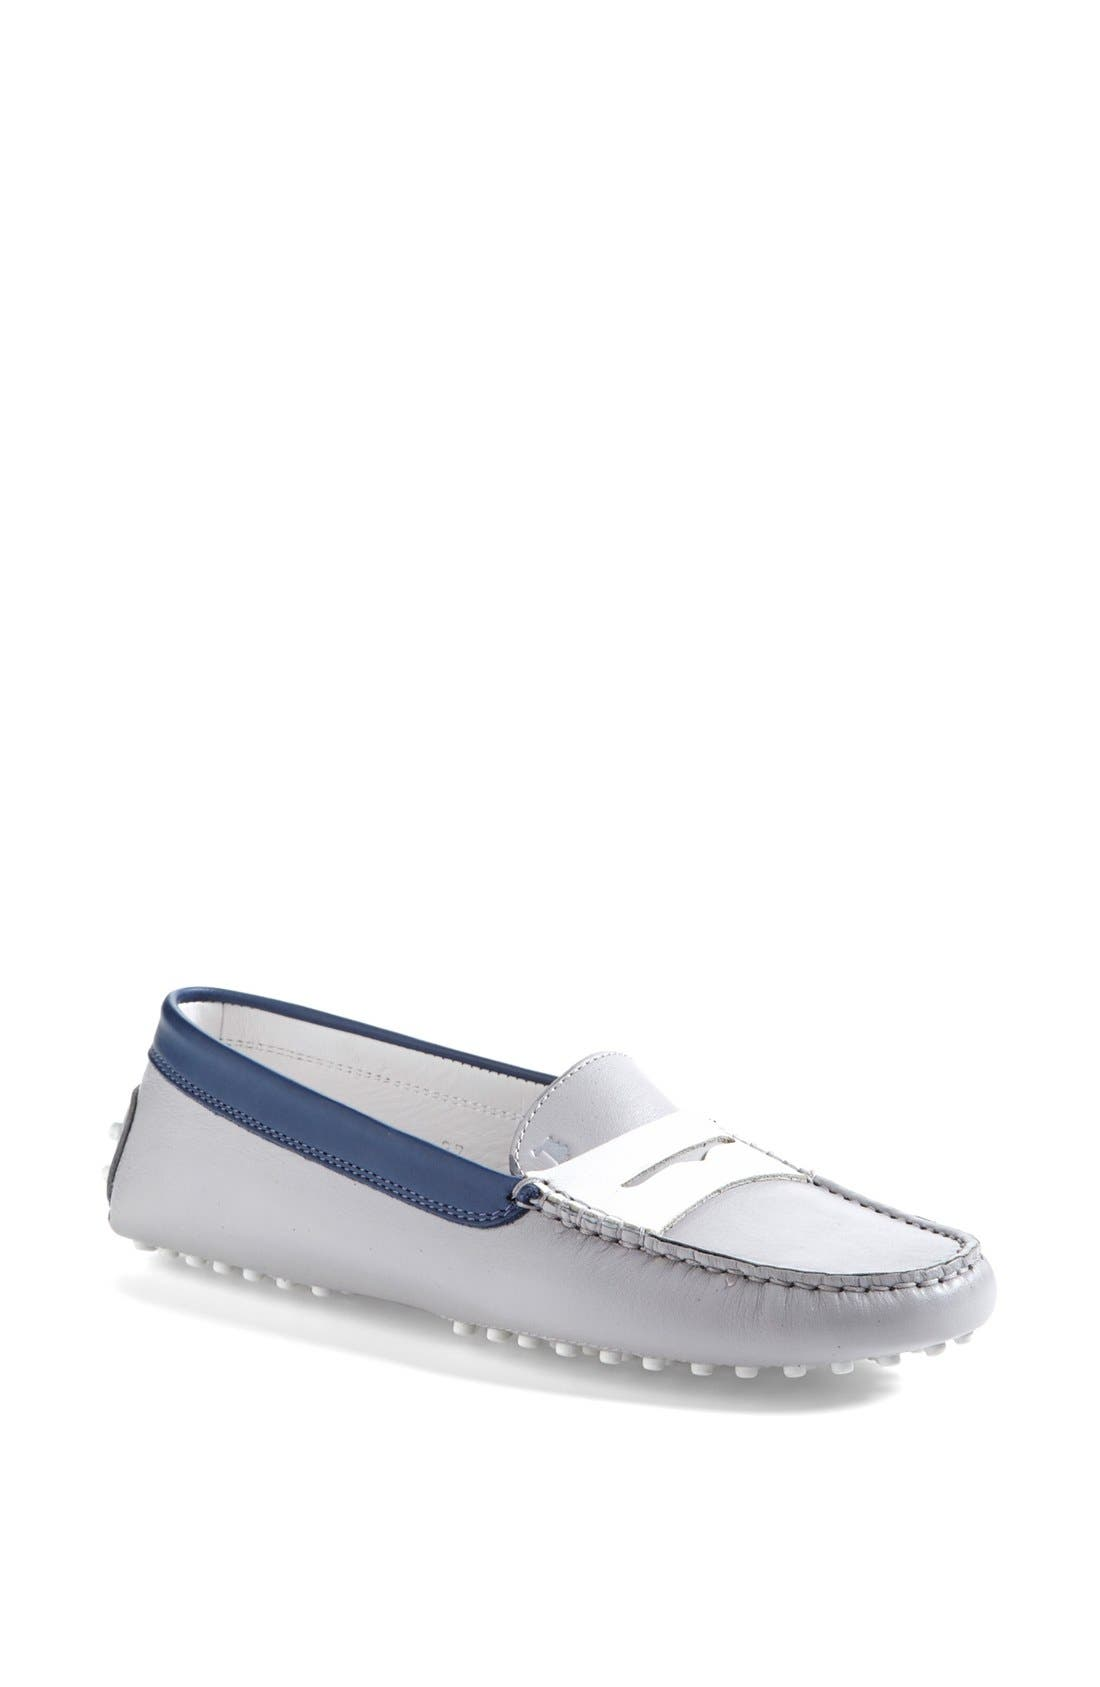 Main Image - Tod's 'Gommini' Colorblocked Leather Driving Moccasin